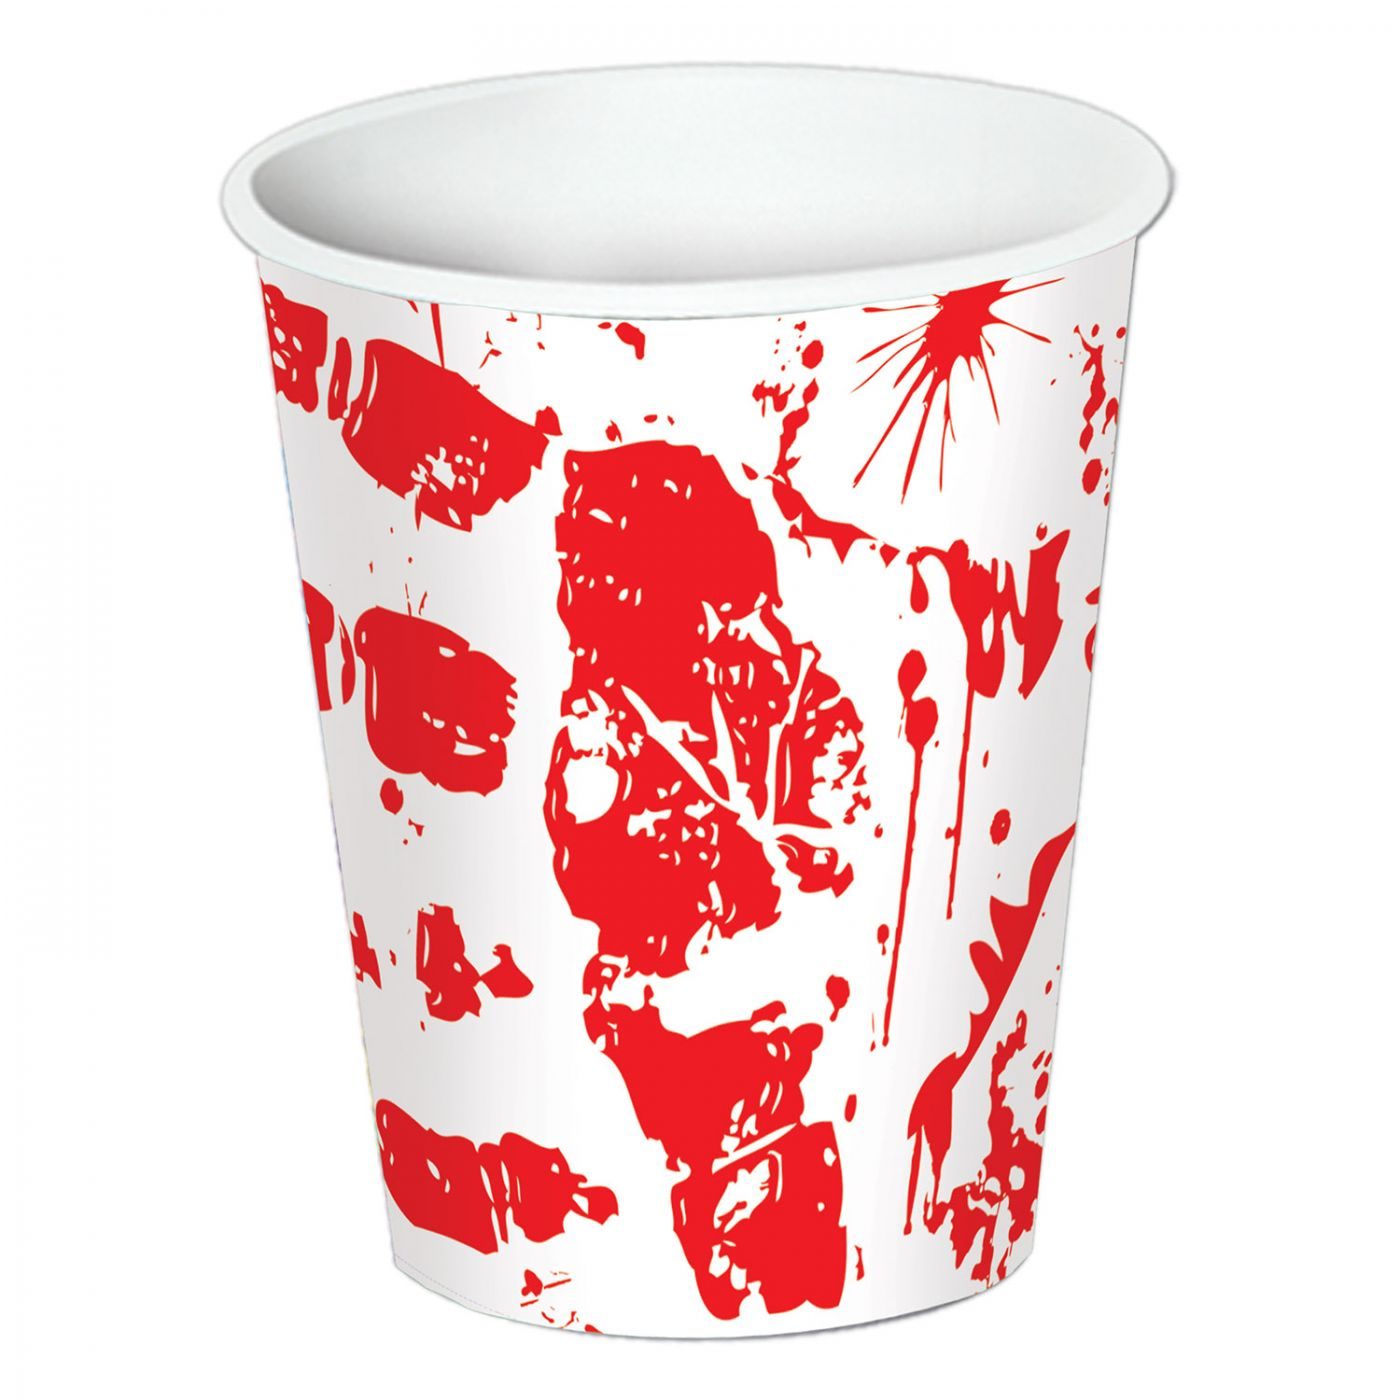 Bloody Handprints Beverage Cups image